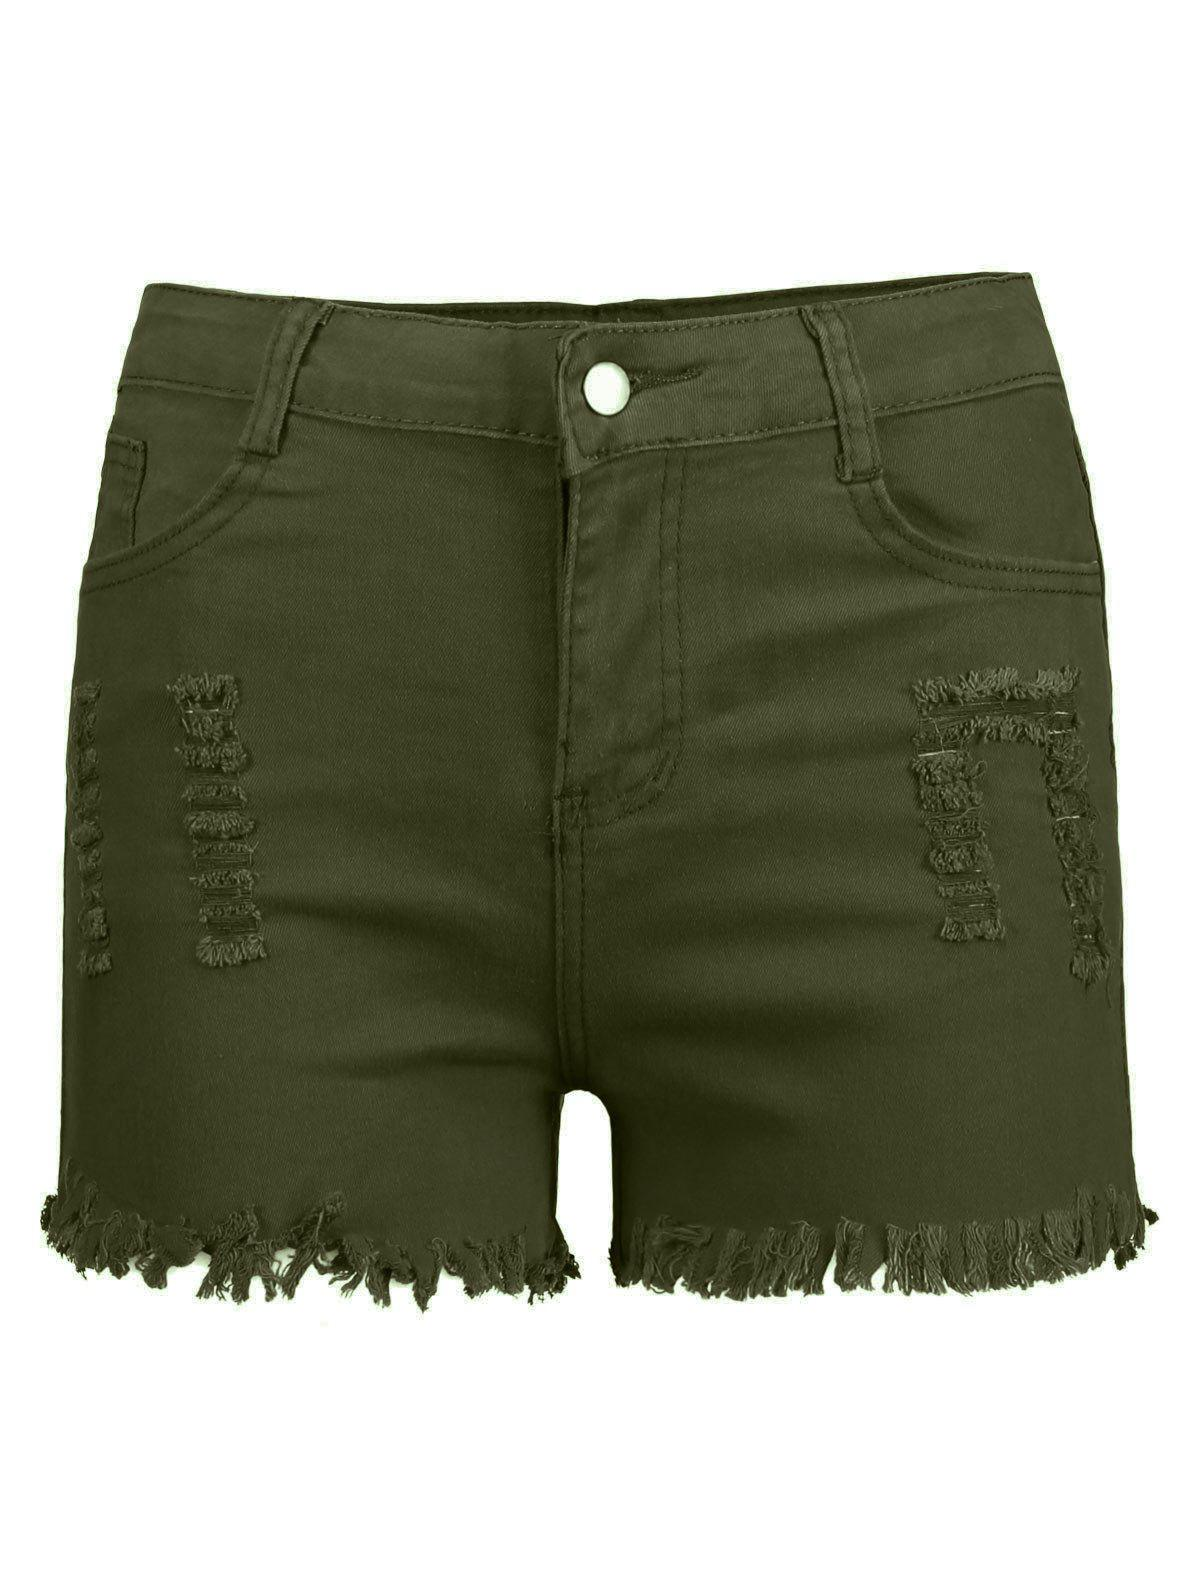 Frayed Ripped High Waisted Denim Shorts - ARMY GREEN S